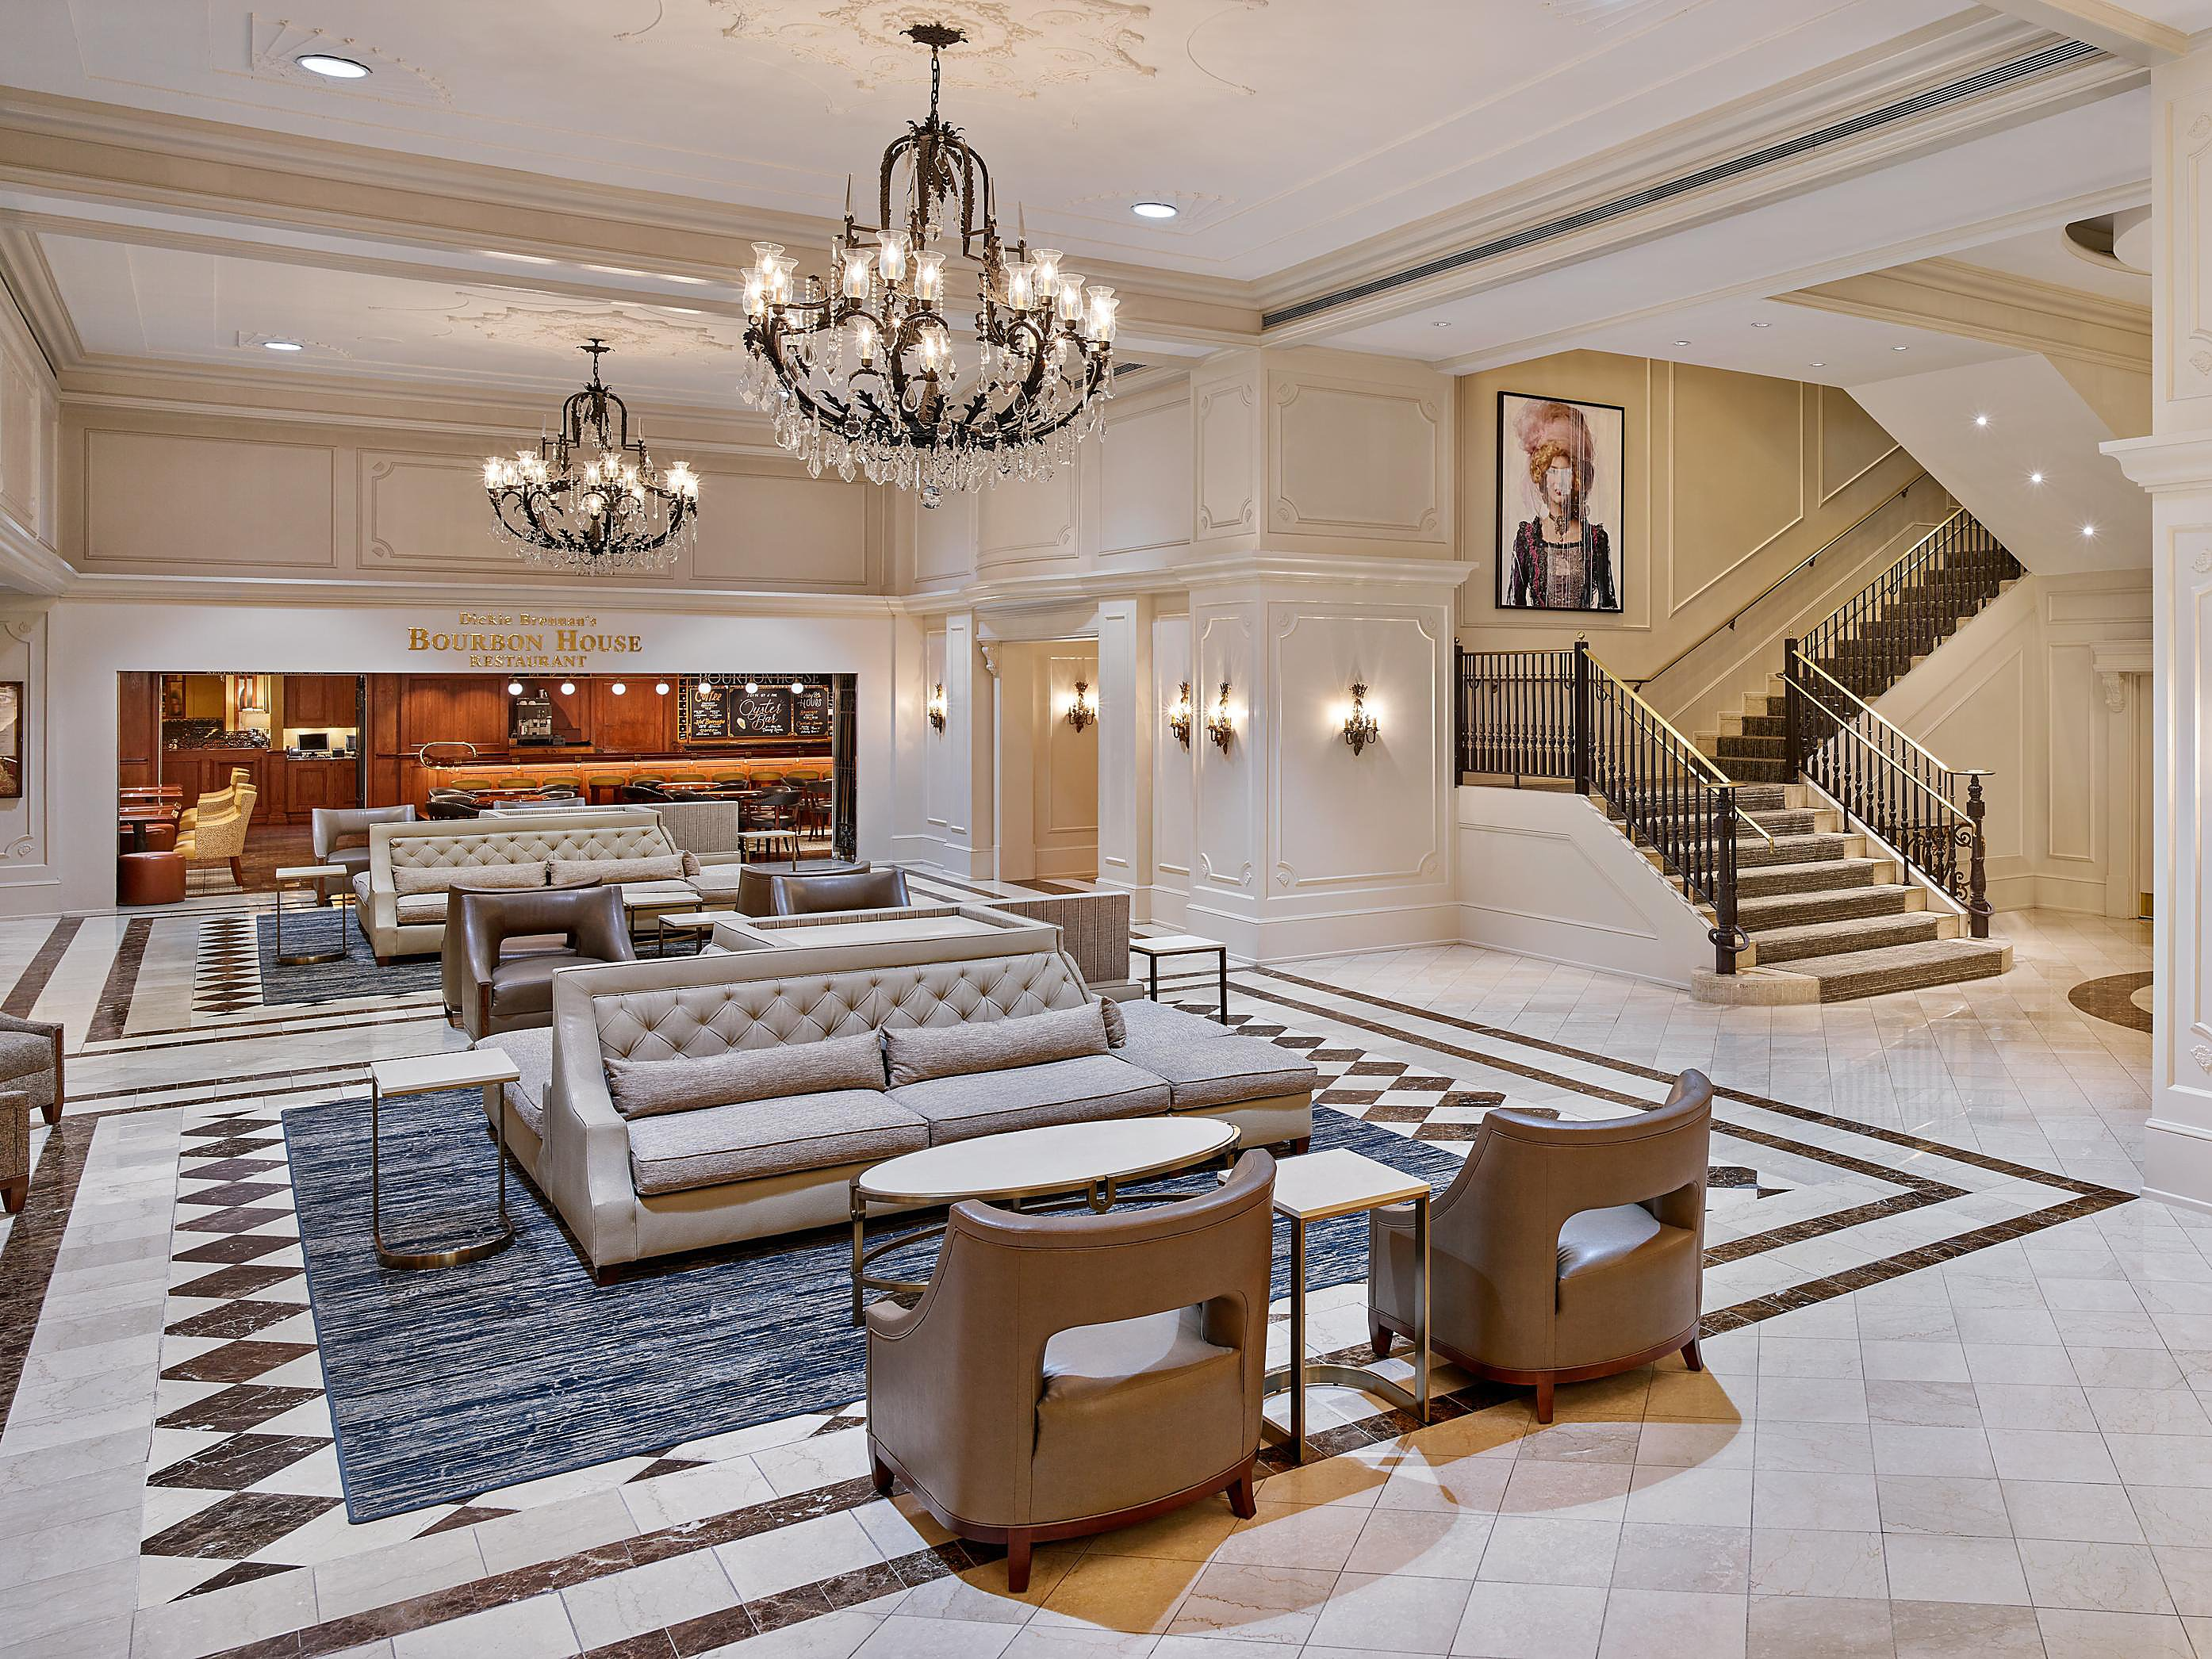 Hotels in New Orleans Near Bourbon Street | Crowne Plaza New